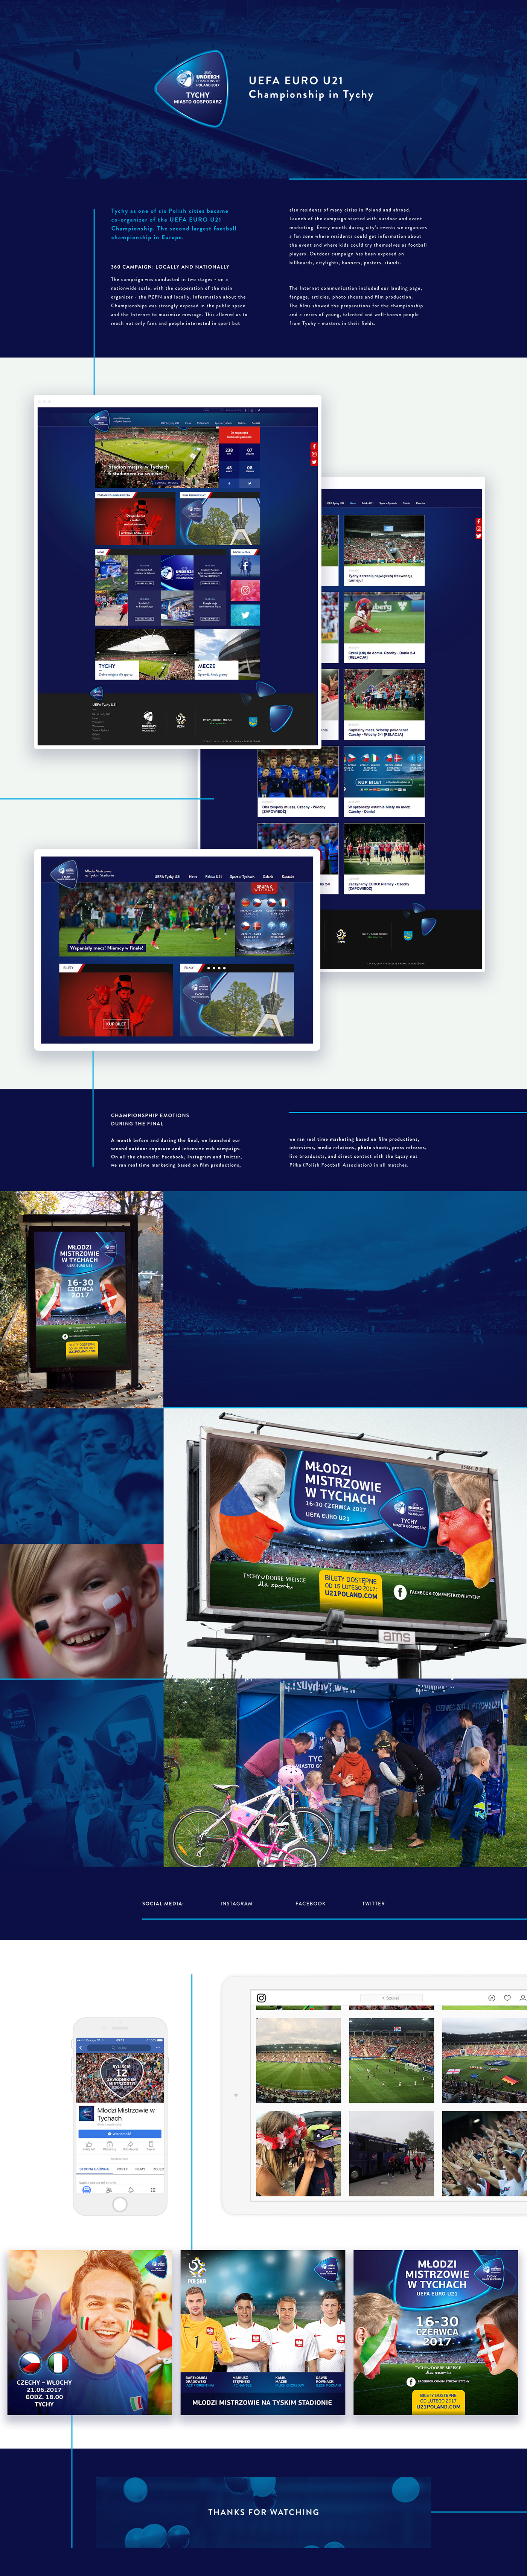 football Sport Campaign real time social media www UEFA EURO U21 tychy Outdoor